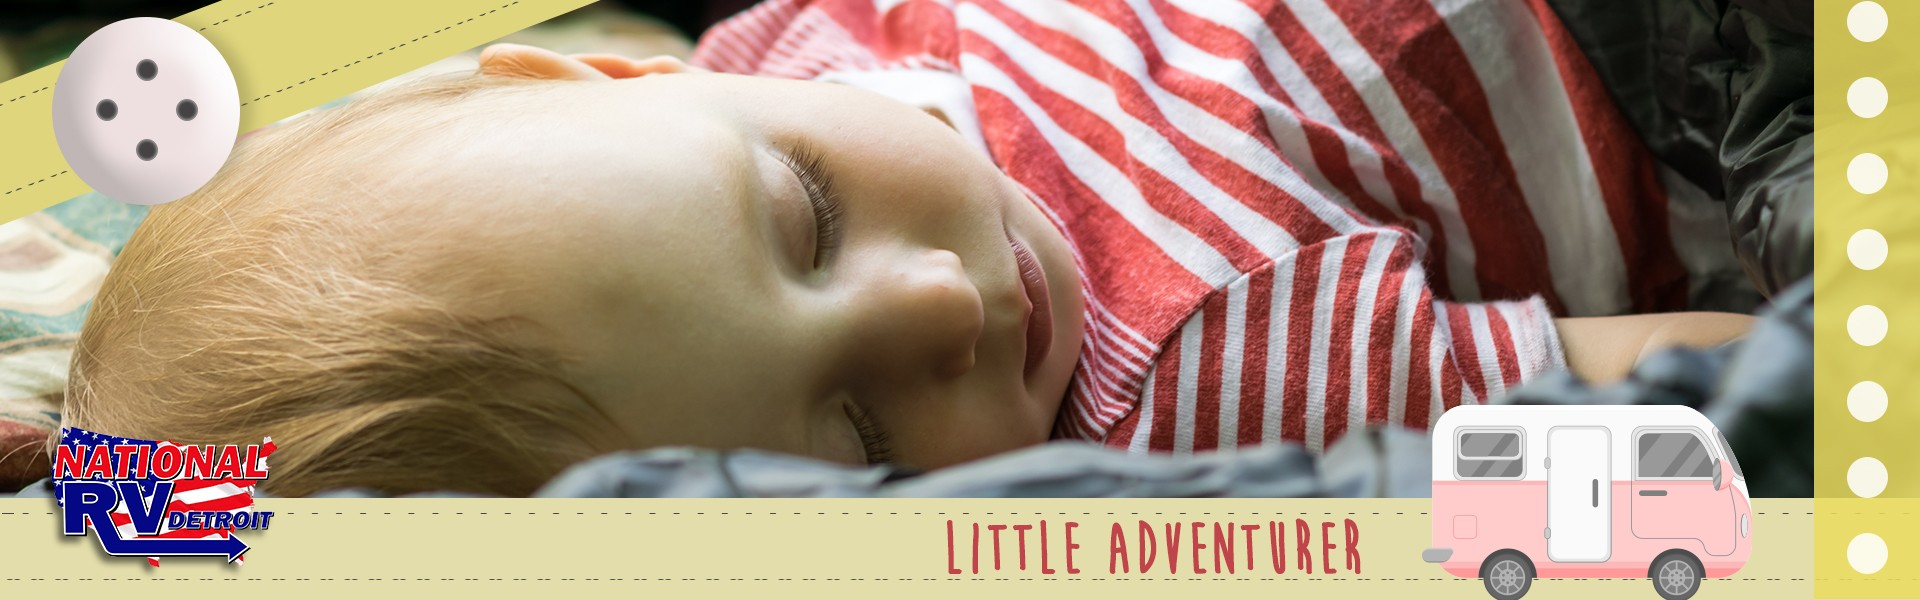 little adventurer - sleeping baby with illustrated ribbons and RV